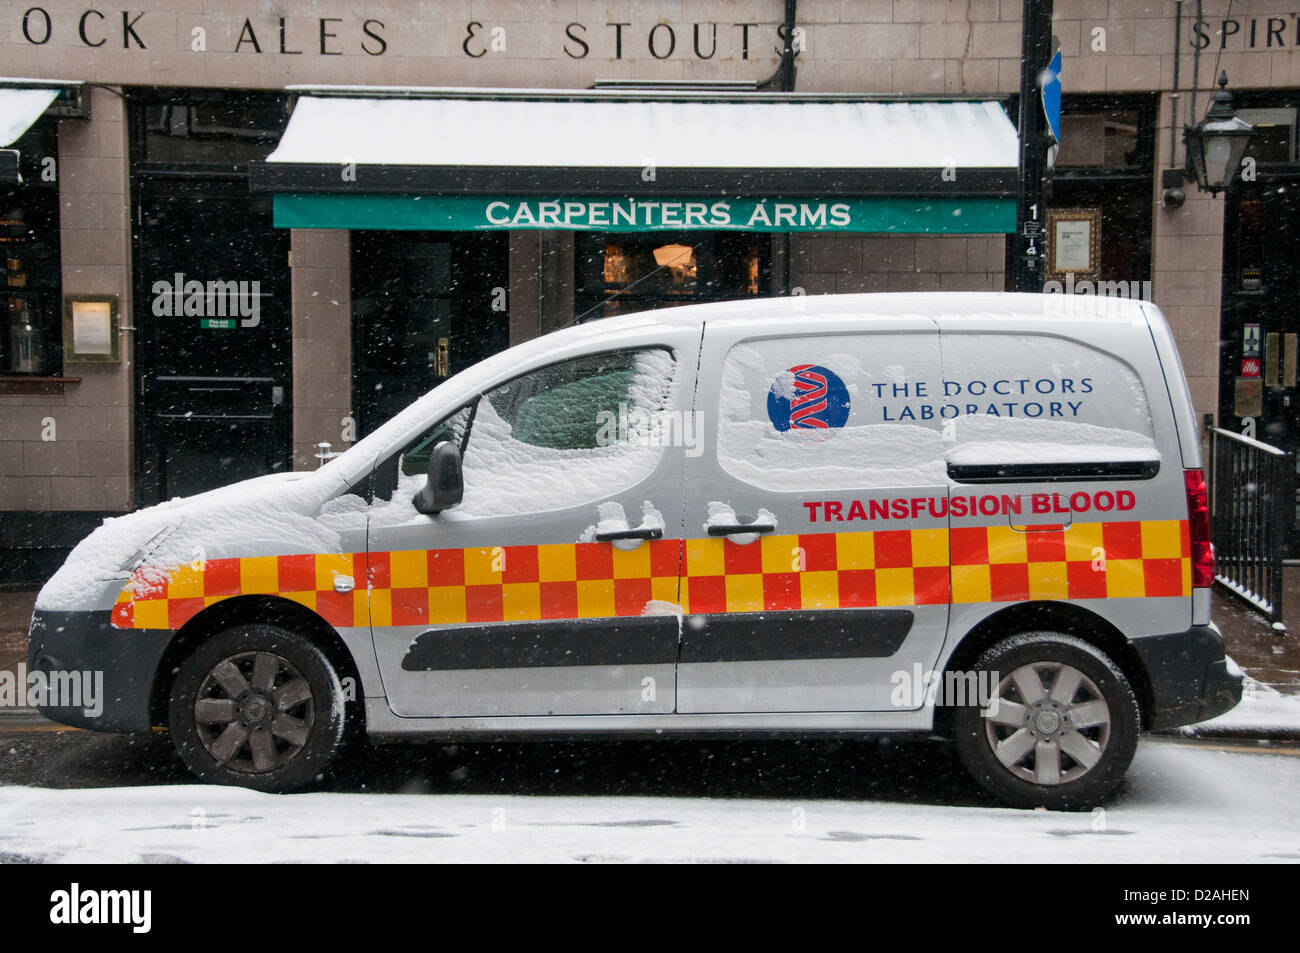 London, UK. 18/01/13. A blood transfusion van is covered in a layer of snow, as snow falls in Central London. - Stock Image